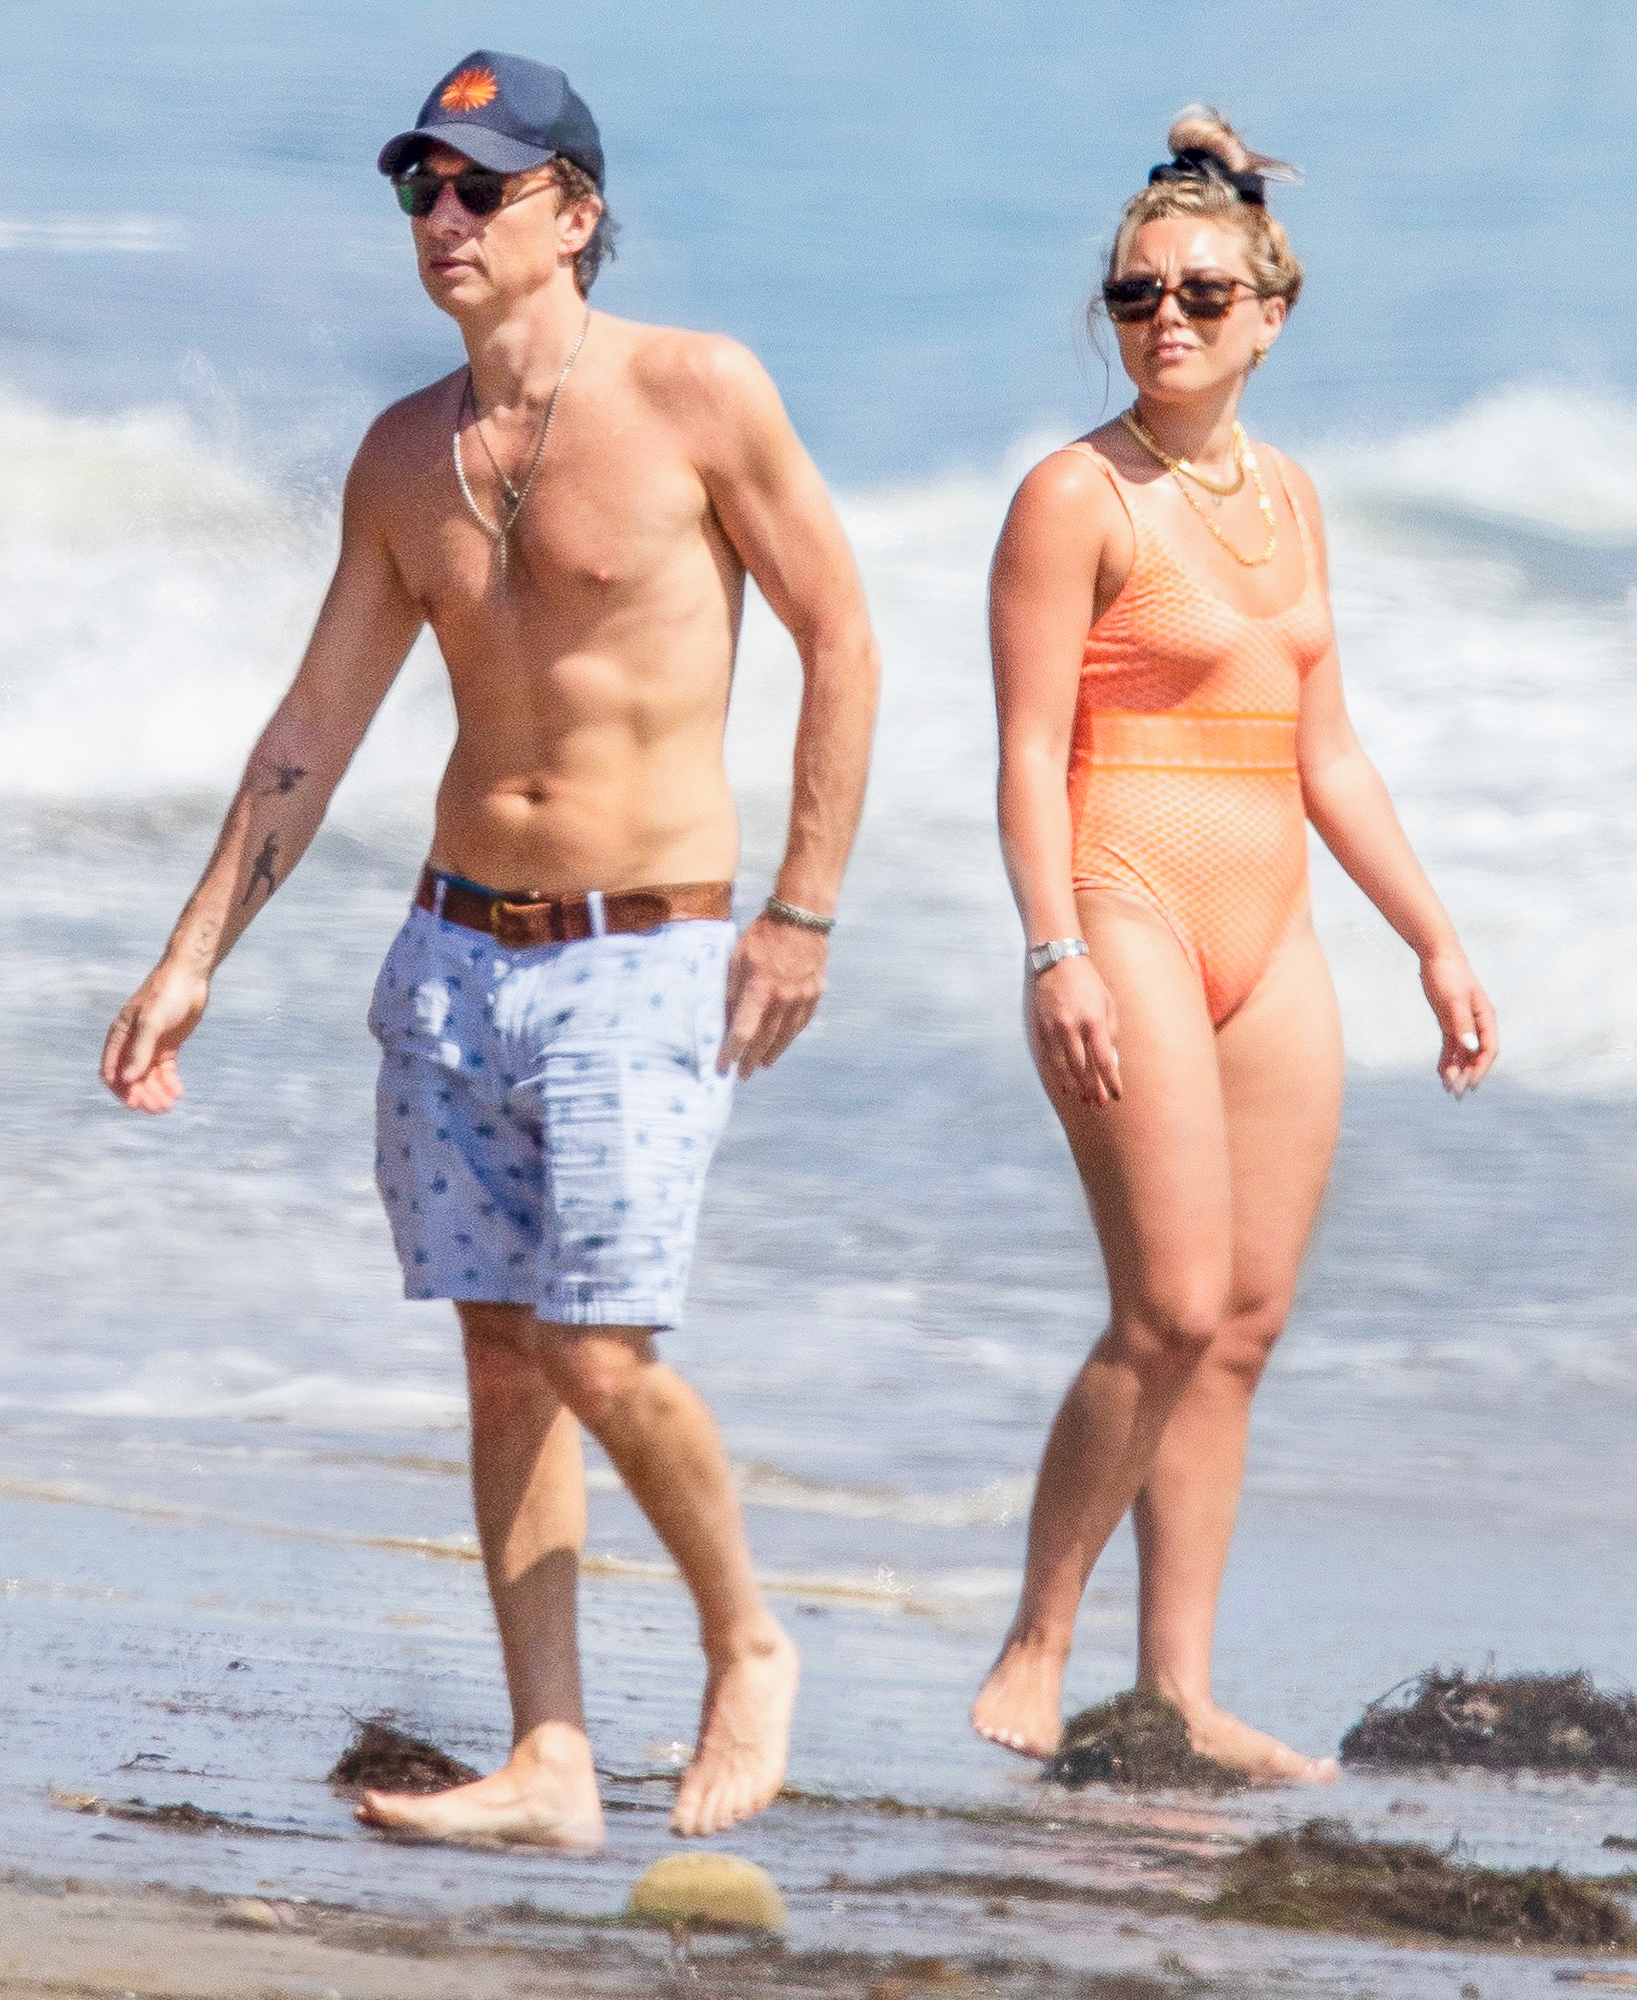 Florence Pugh and Zach Braff Soak Up the Sun on the Beach for His 46th Birthday